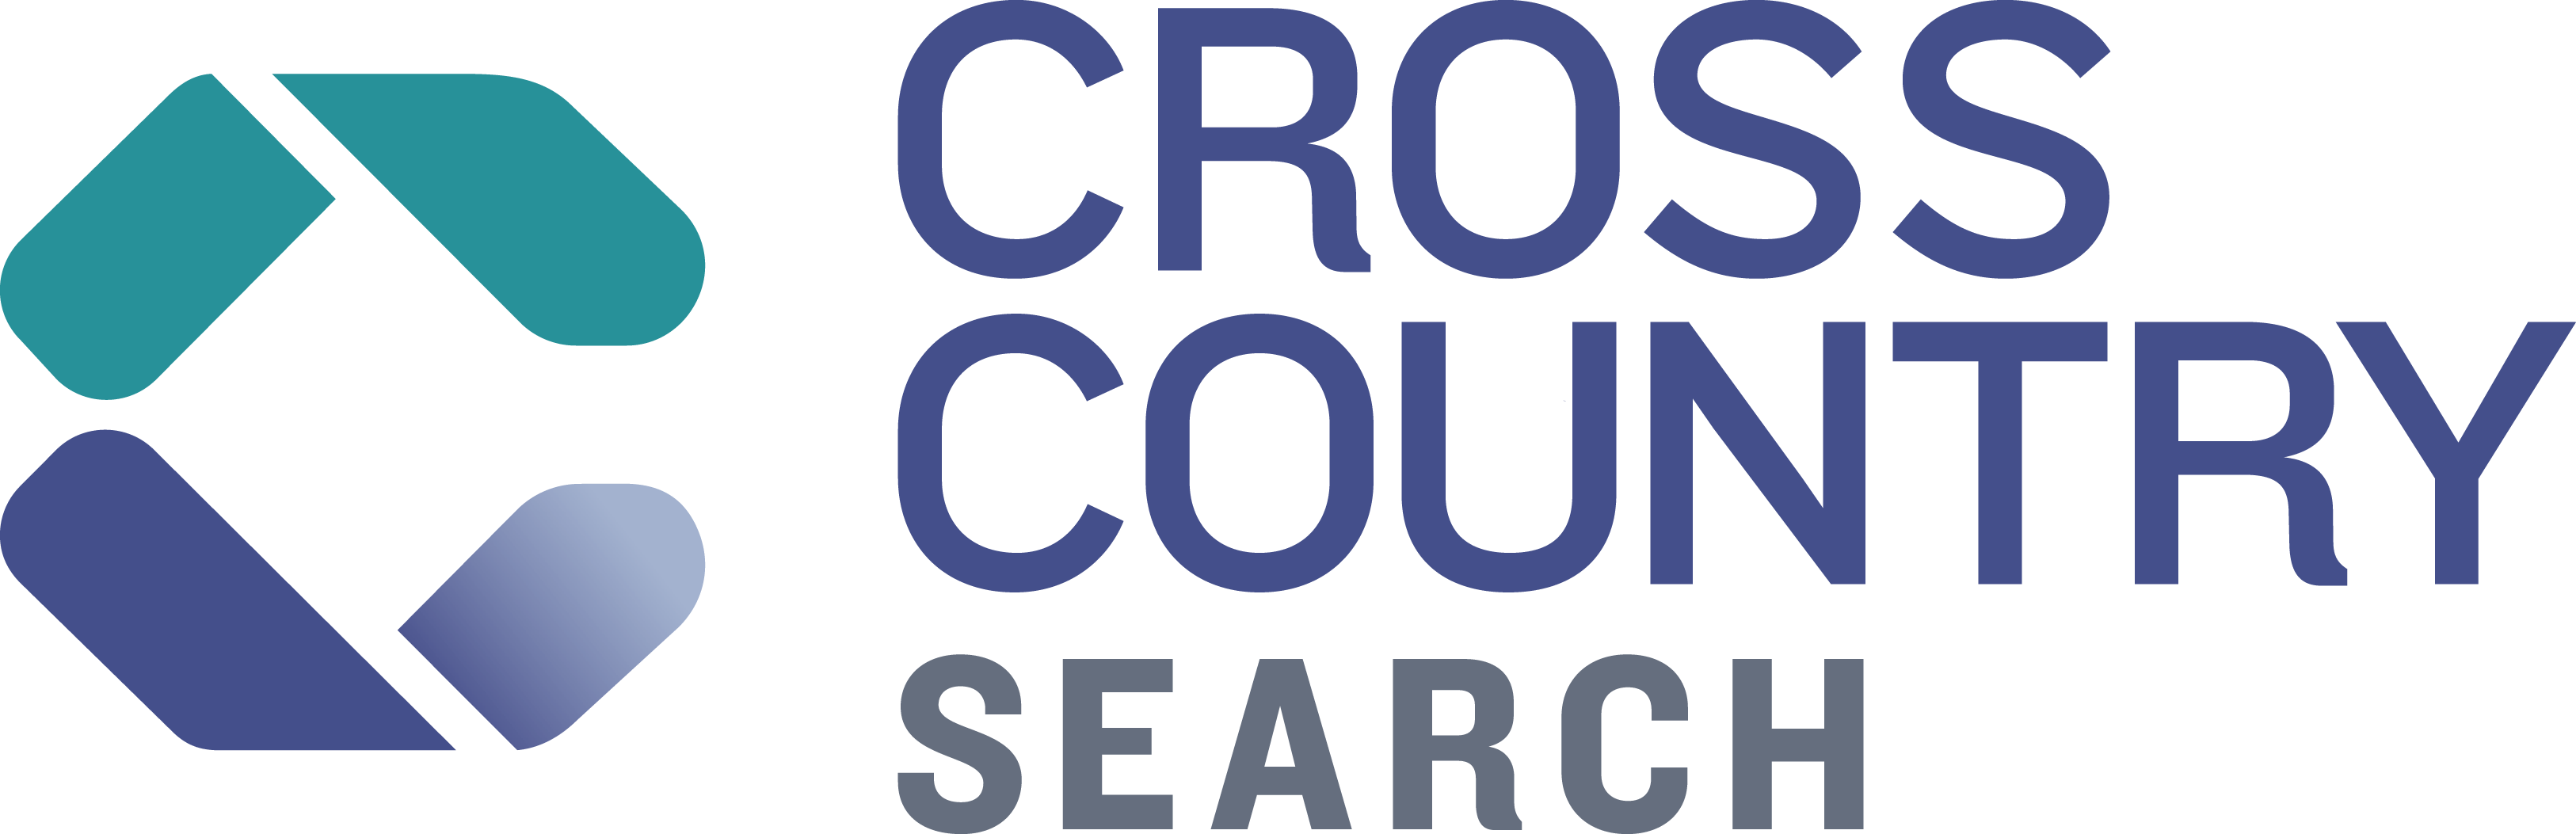 Cross Country Search (fka Cejka, Part of Cross Country Healthcare)